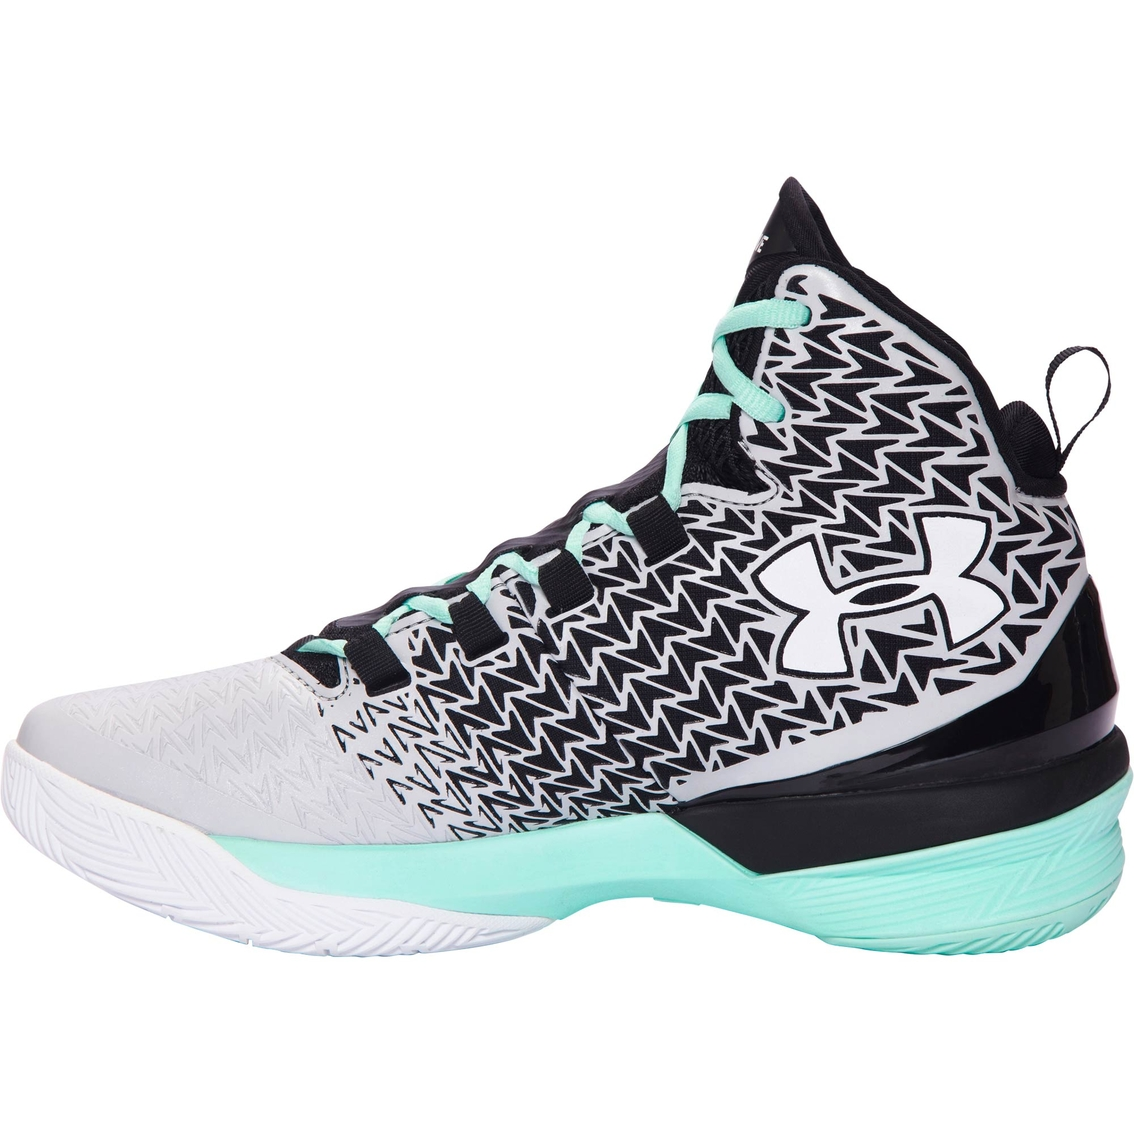 0d2bd68786f2 Under Armour Women s Clutchfit Drive 3 Basketball Shoes